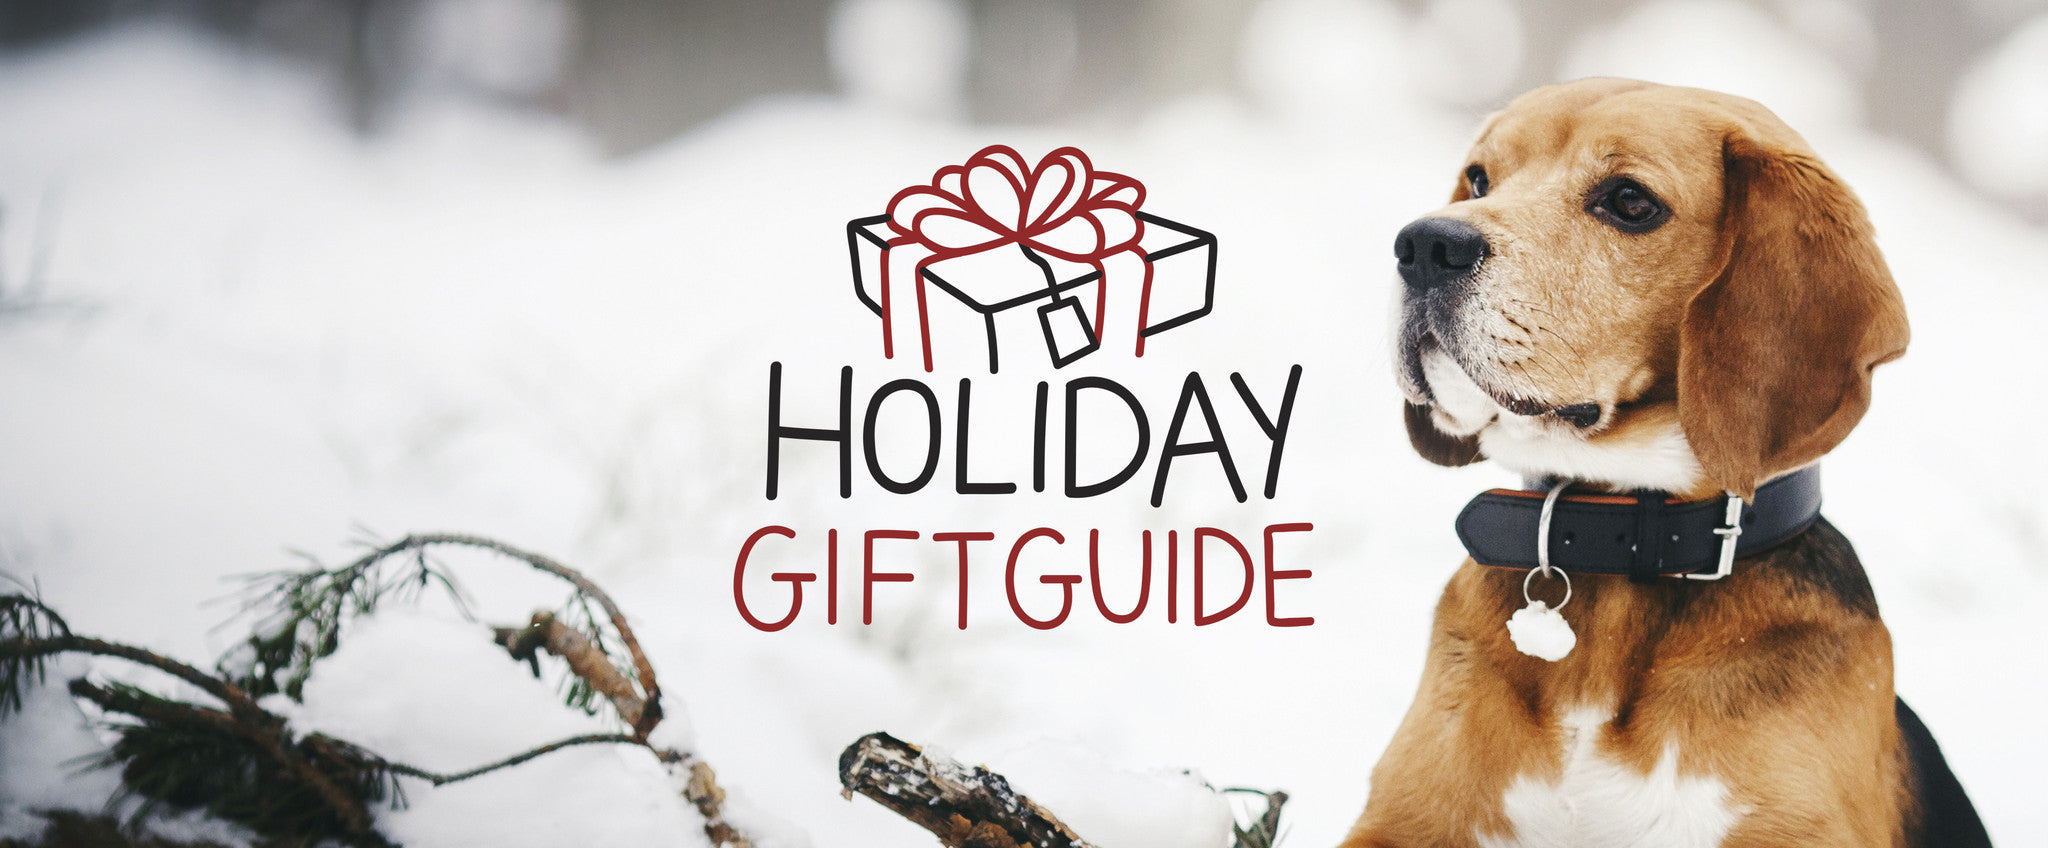 Holiday Gift Guide 2016